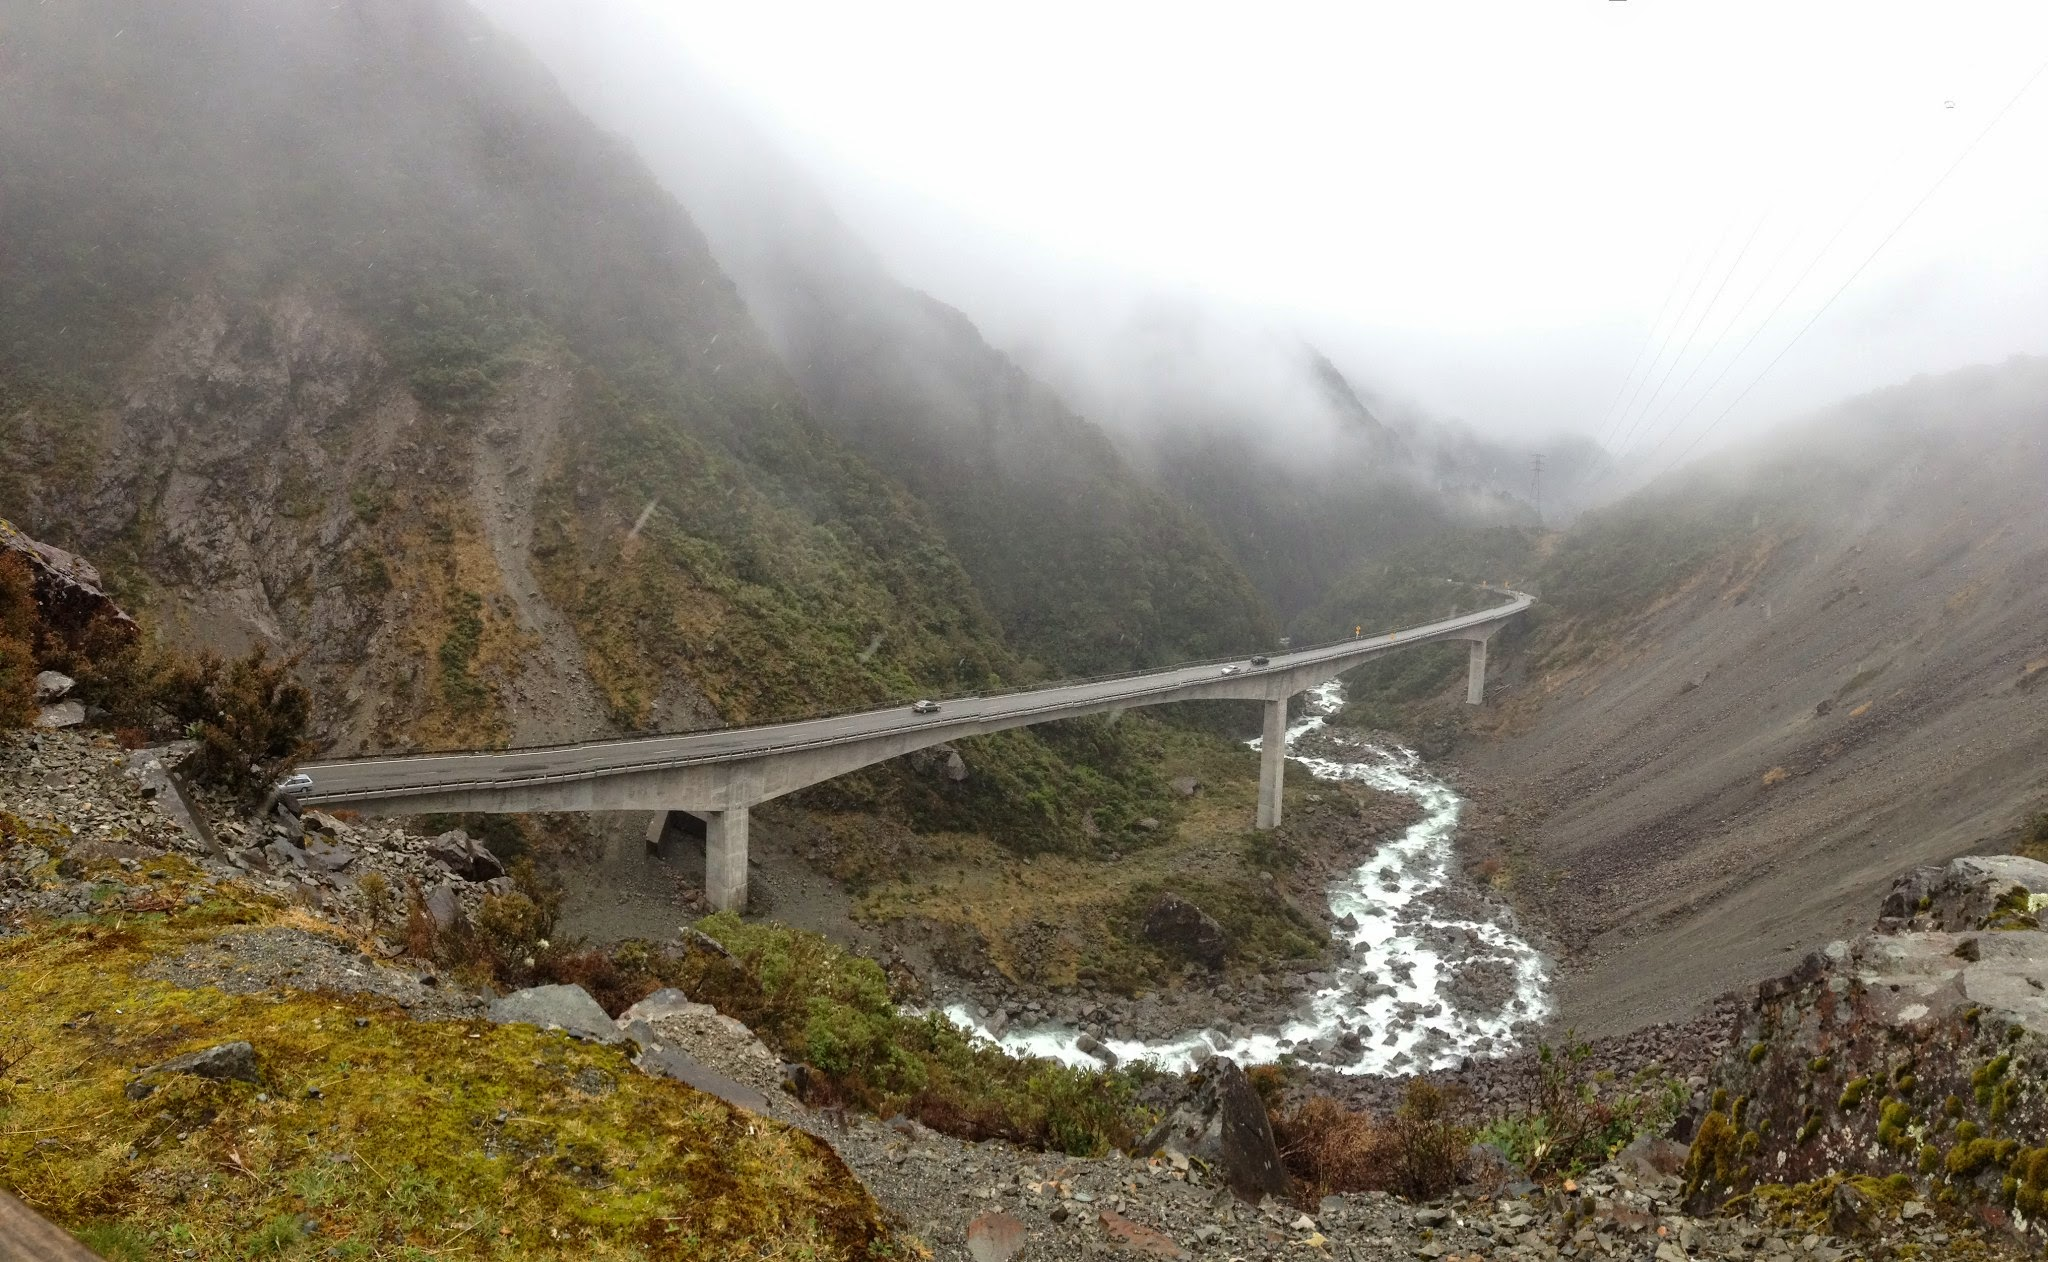 Arthur's Pass, south island, west coast, rainforest, new zealand, river, viaduct